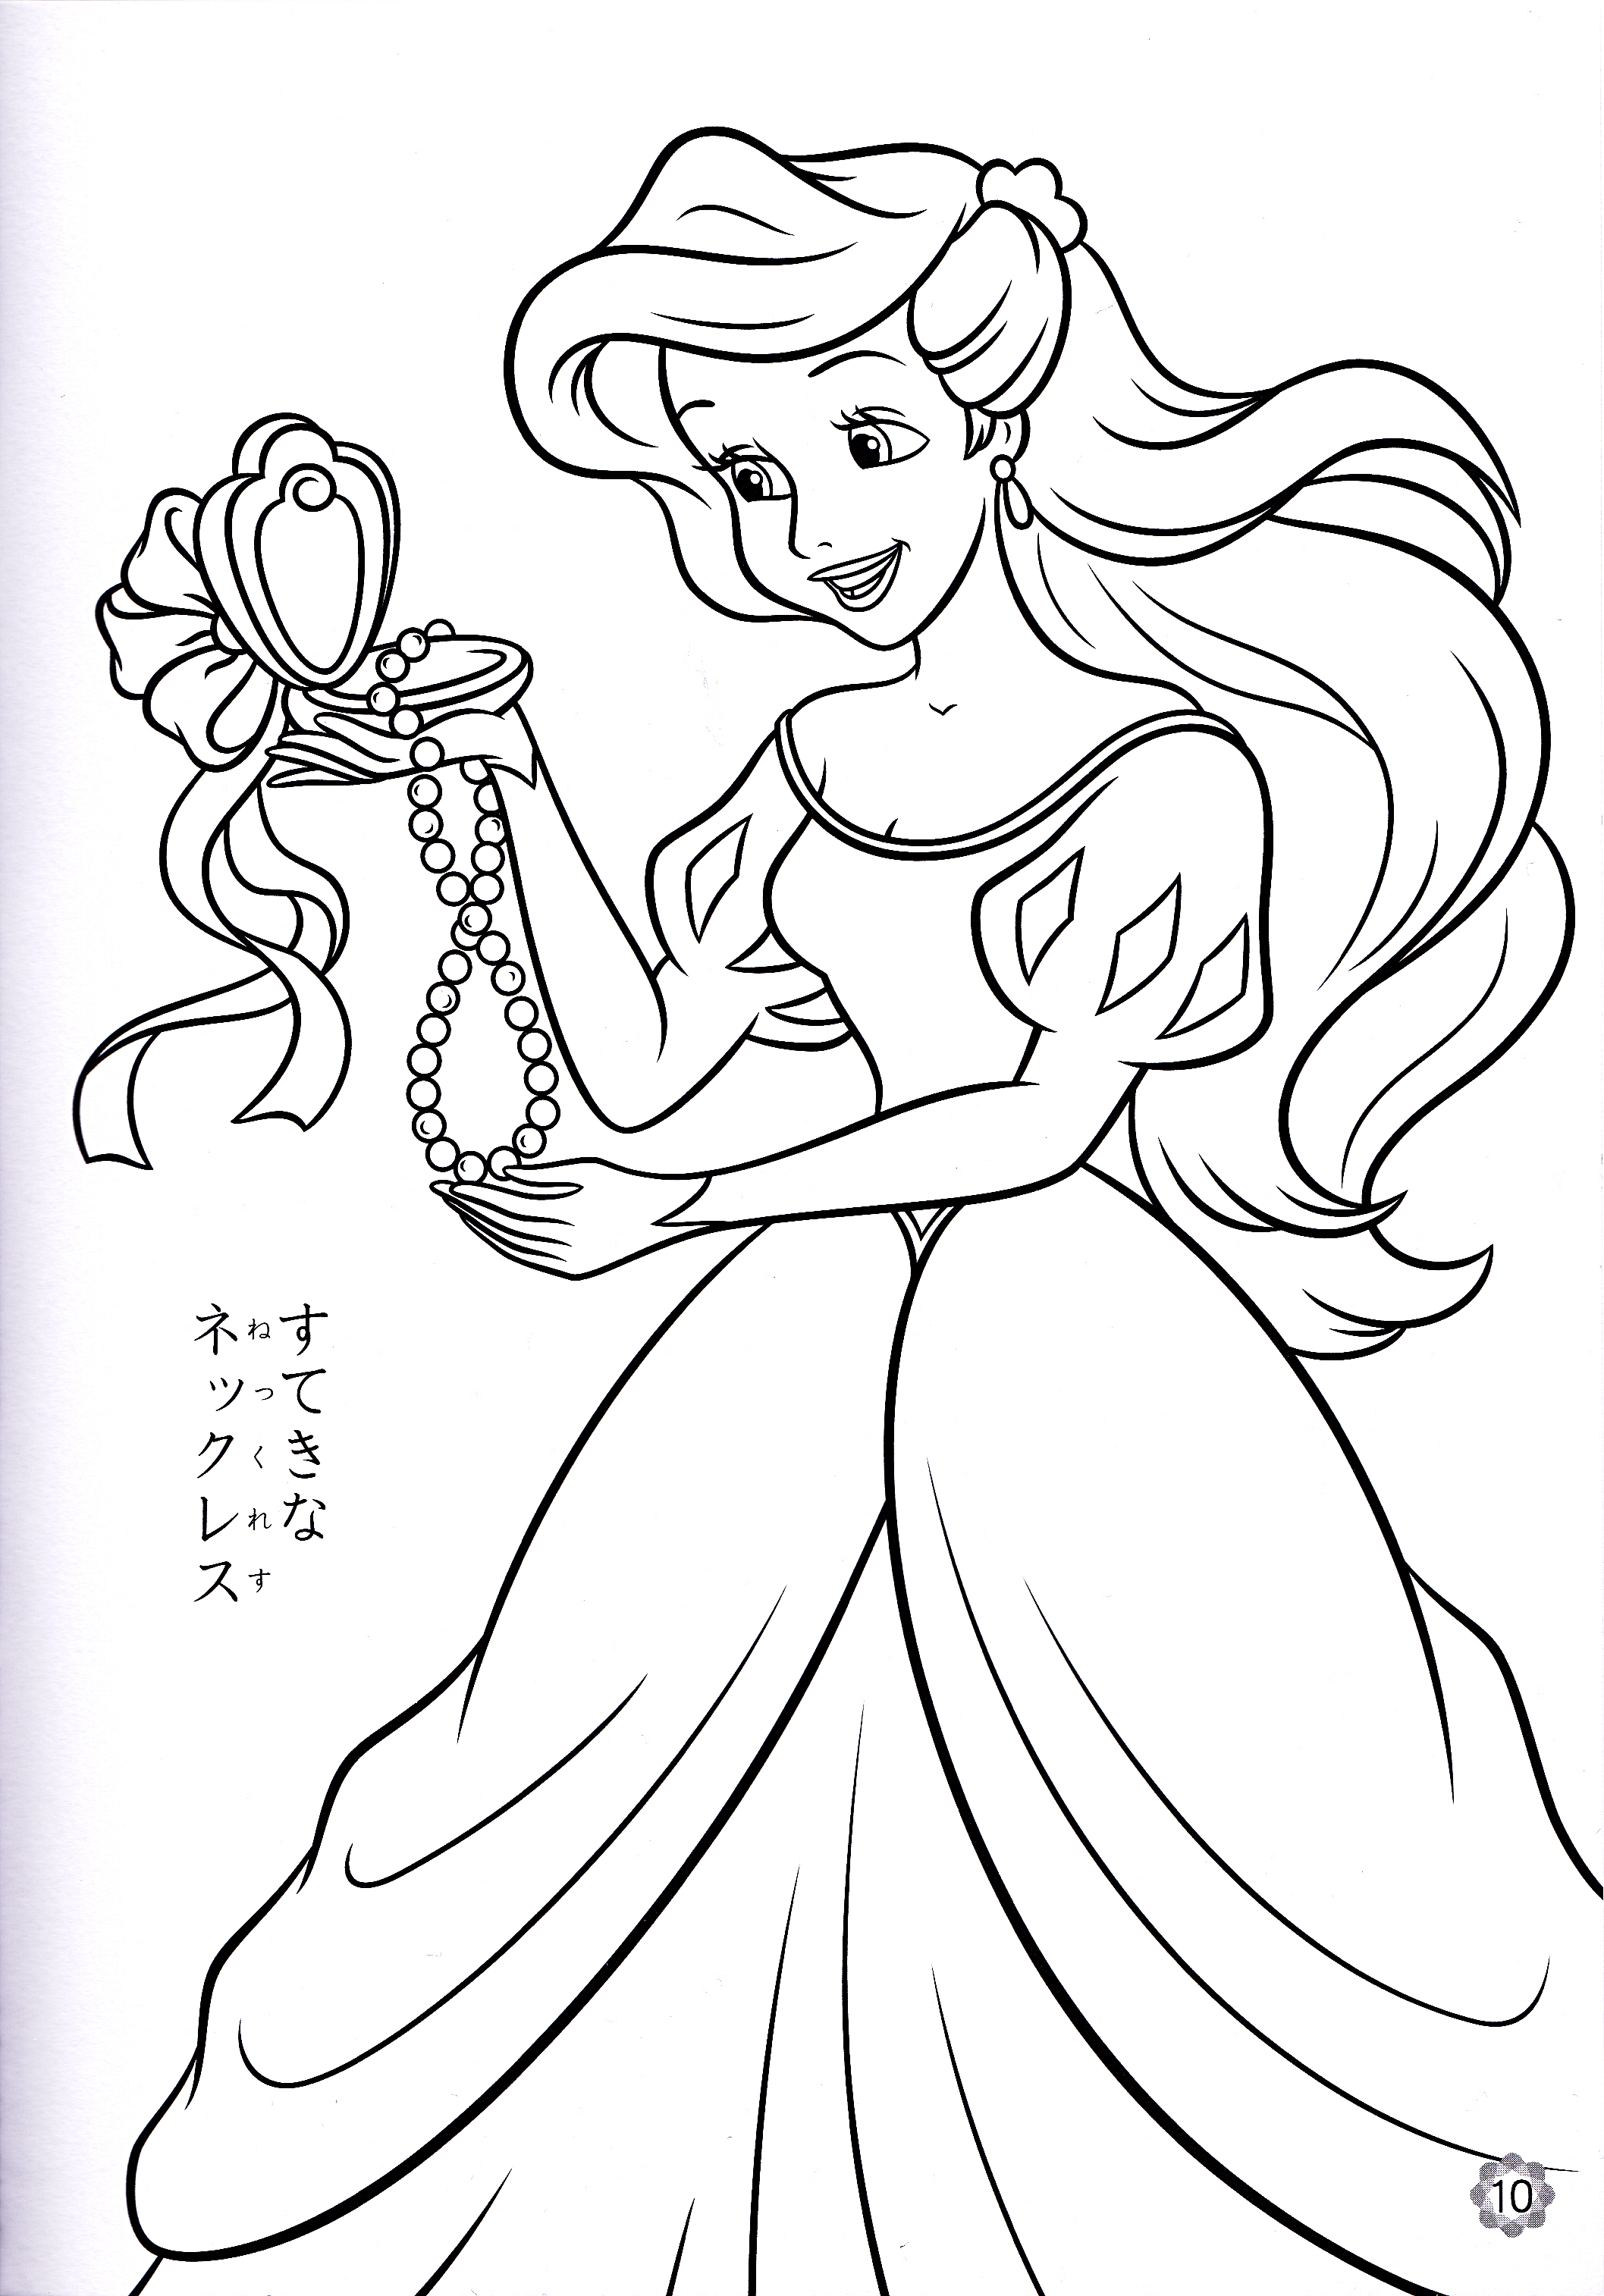 Free Printable Disney Princess Coloring Pages For Kids Coloring Pages Princess Printable